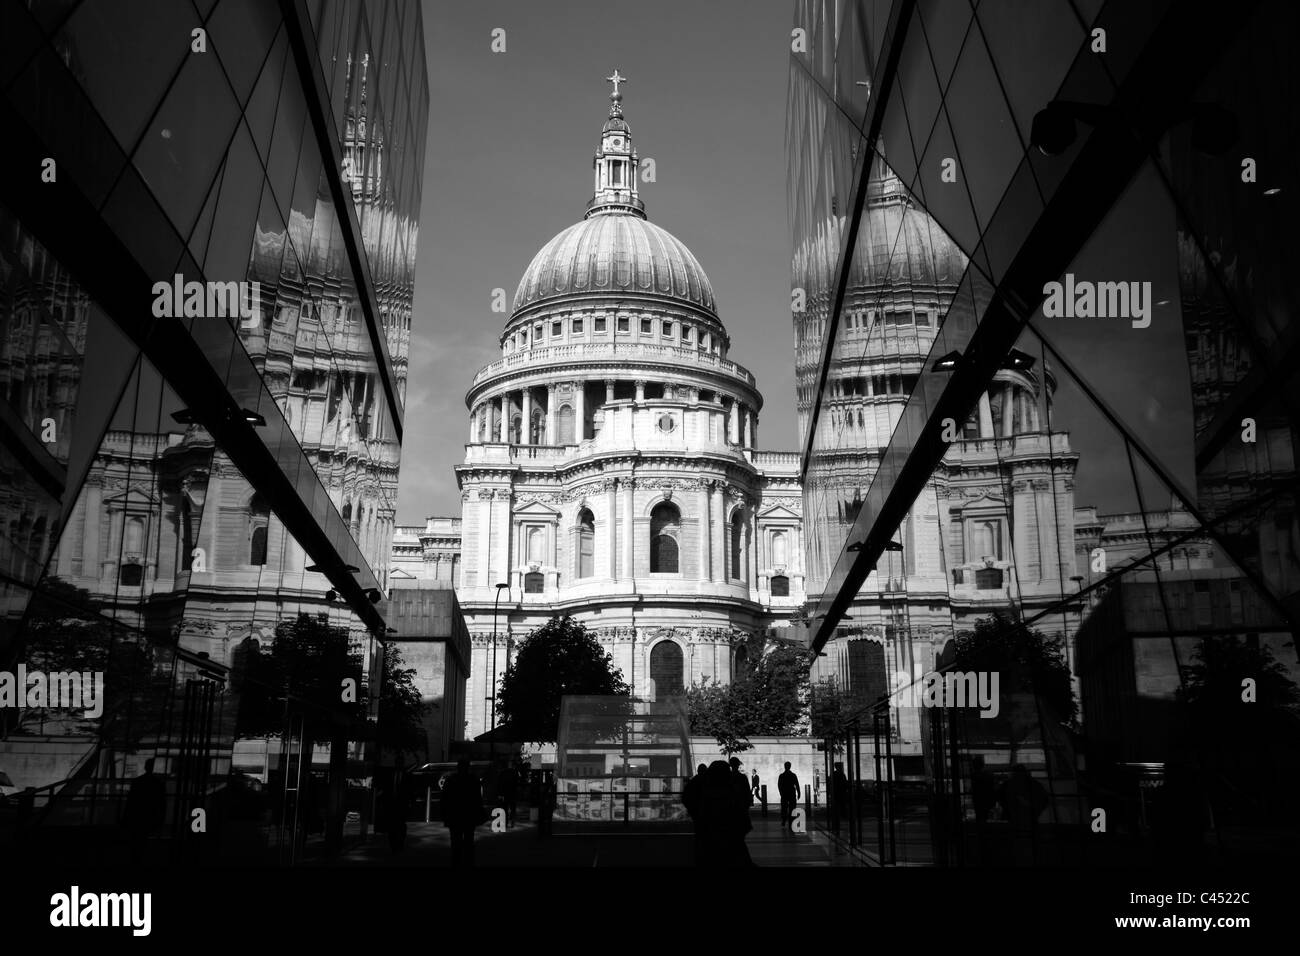 St Paul's Cathedral reflected in the glass exterior of One New Change, City of London, UK - Stock Image